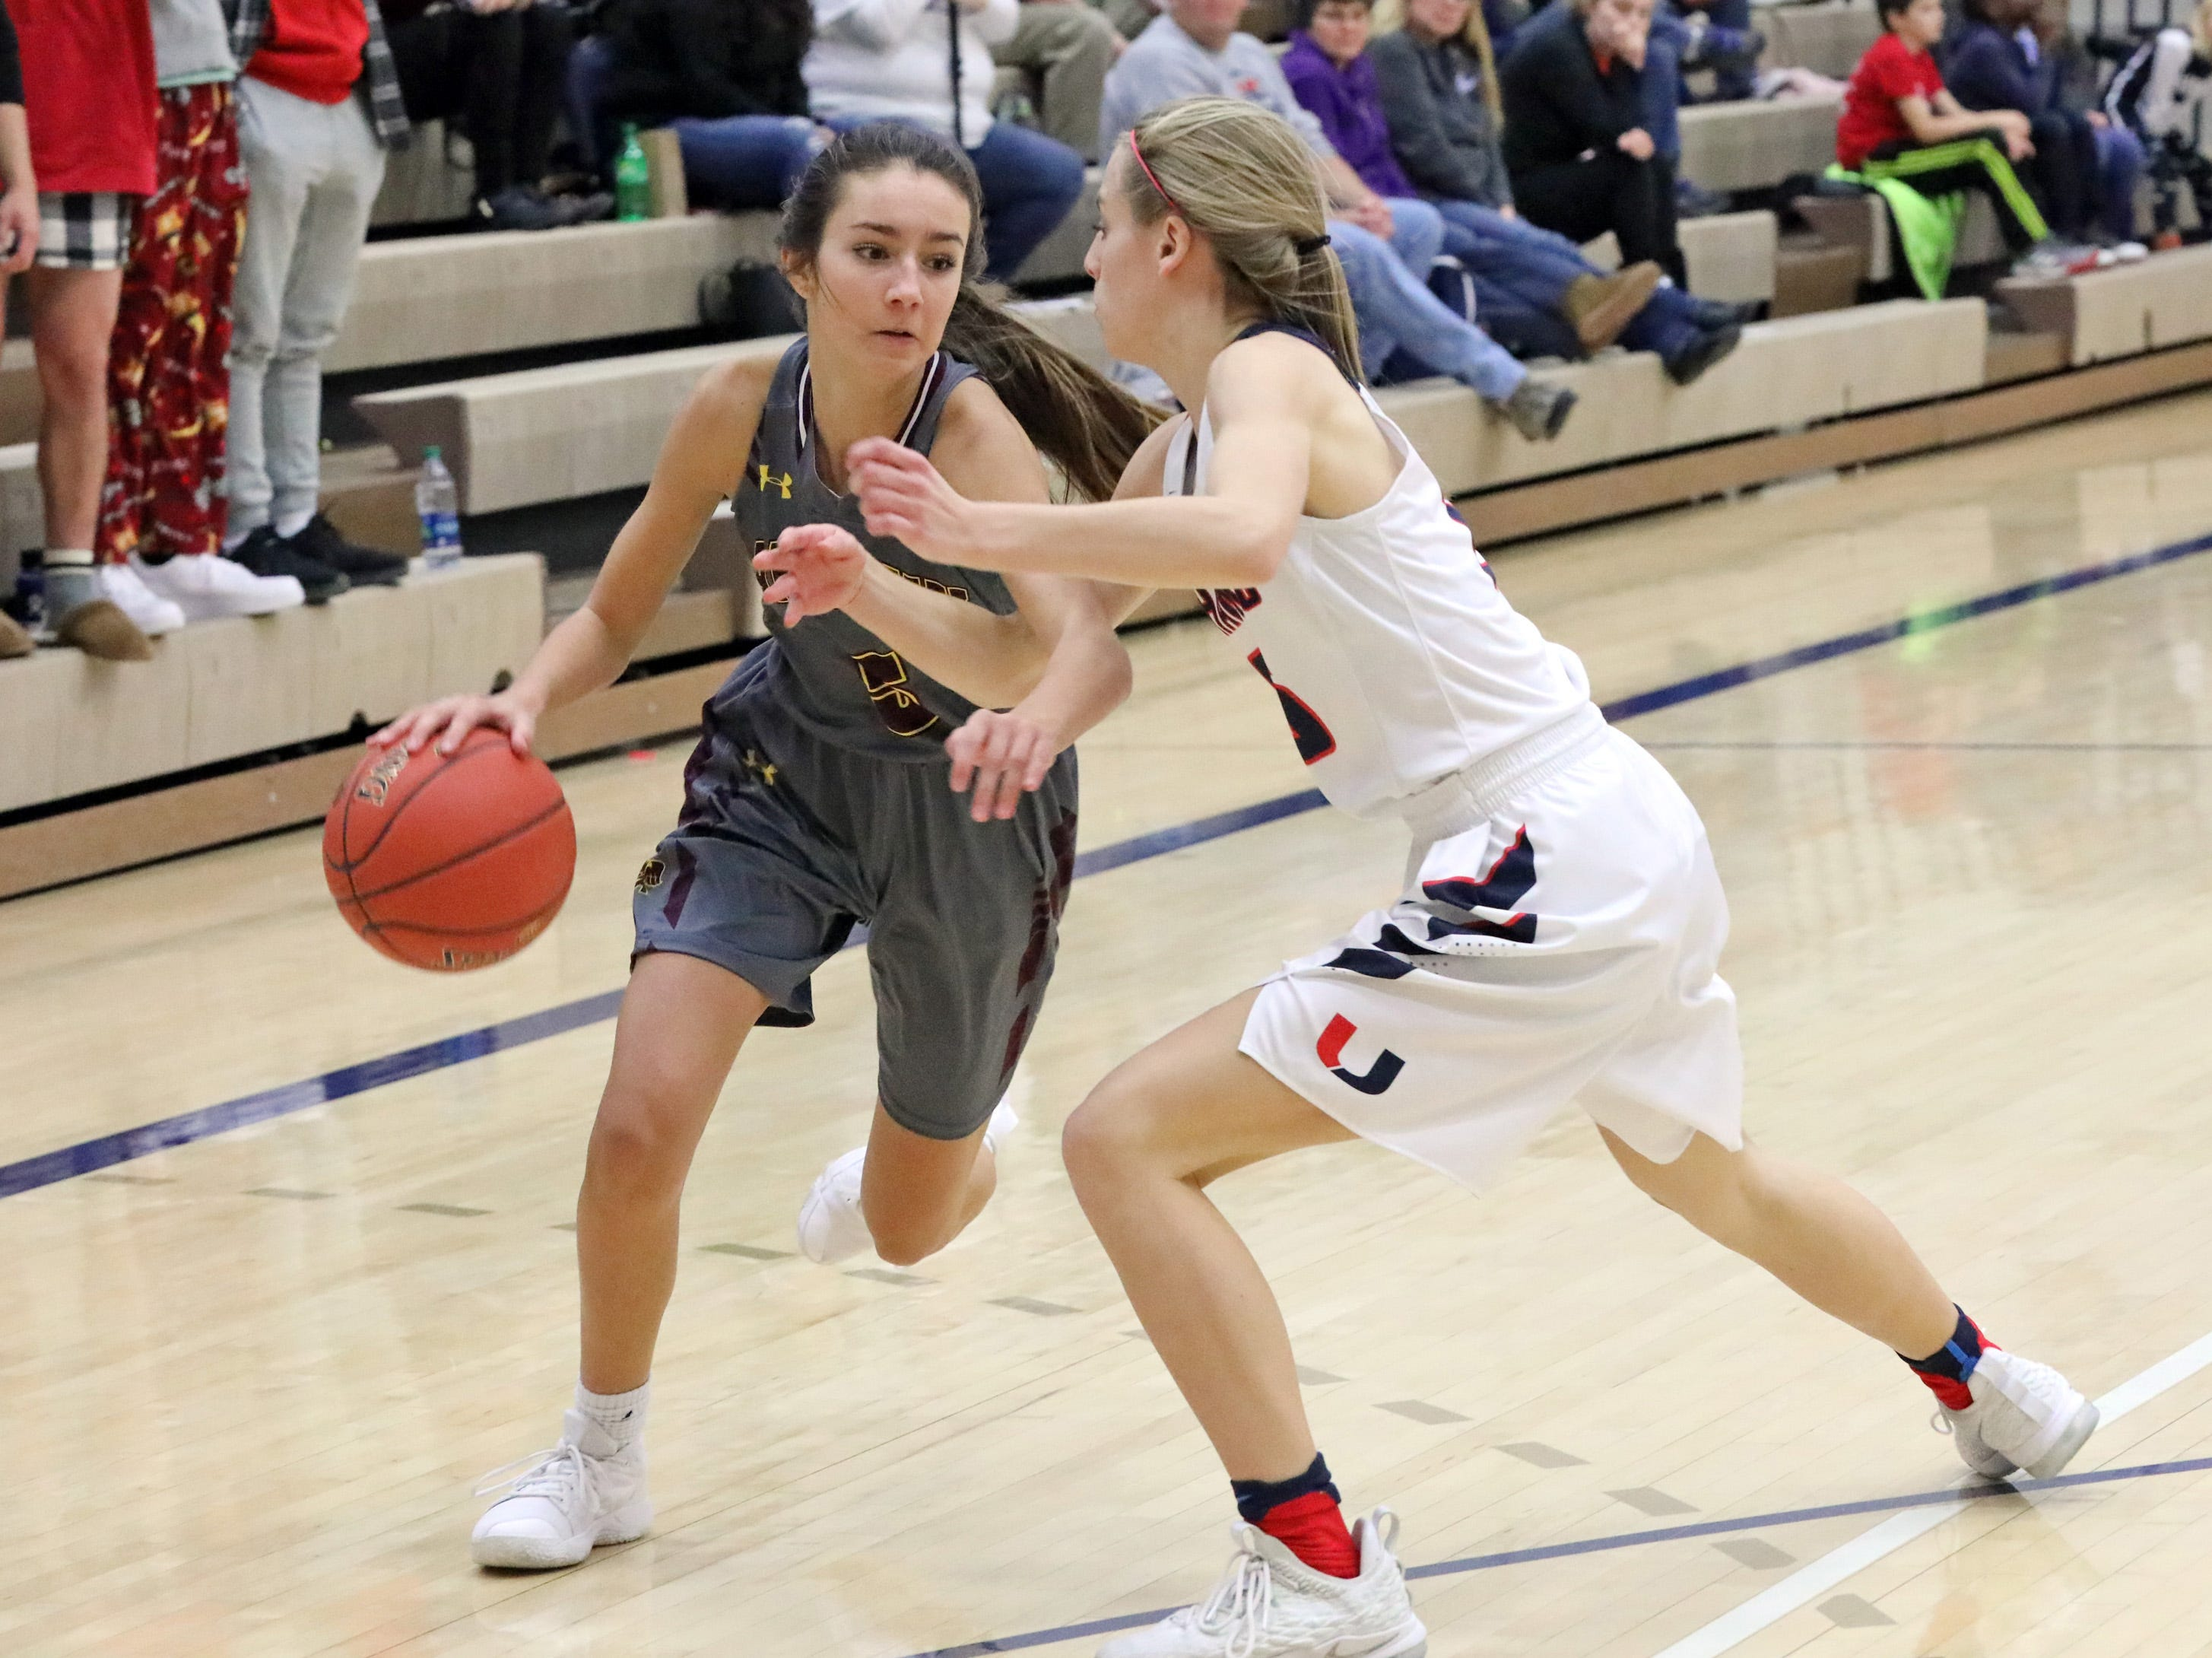 Ankeny junior guard Kayla Pitz  tries to dribble past Urbandale sophomore guard Macy Gaskill as the Ankeny Hawkettes compete against the Urbandale J-Hawks in high school basketball on Friday, Dec. 14, 2018 at Urbandale High School. Ankeny won 46 to 40.